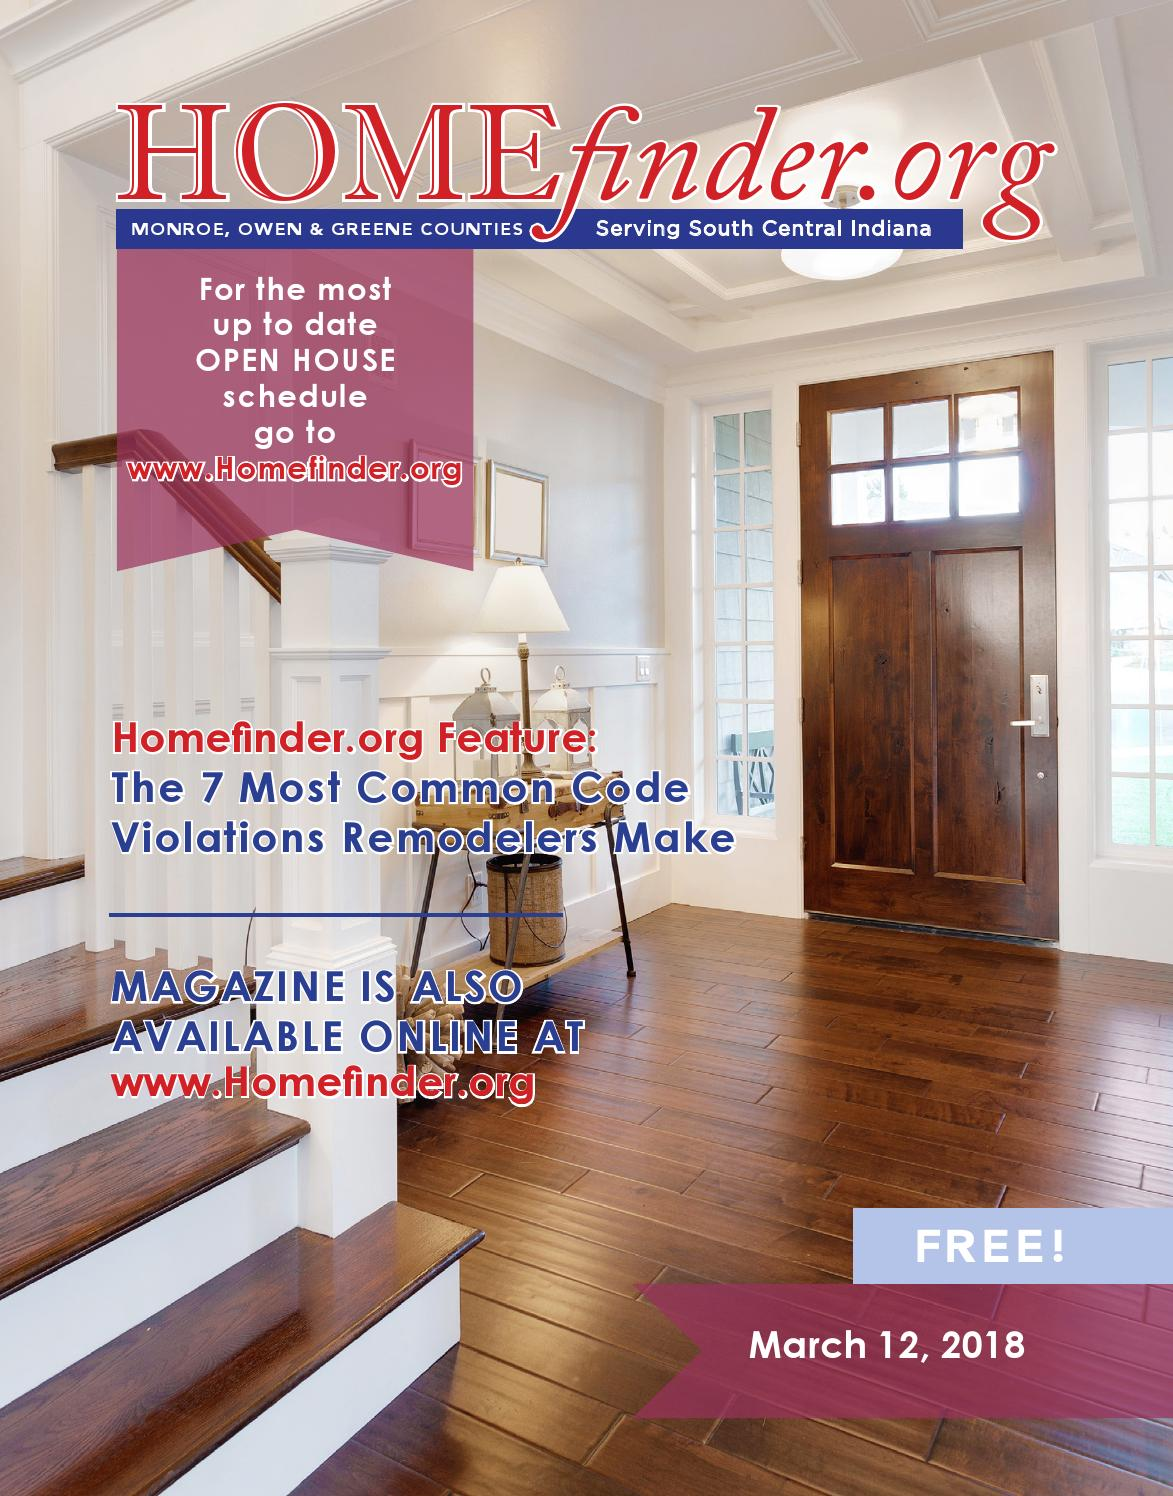 n door ralng nteror ralng desgns ron.htm homefinder031218 by aim media indiana issuu  homefinder031218 by aim media indiana